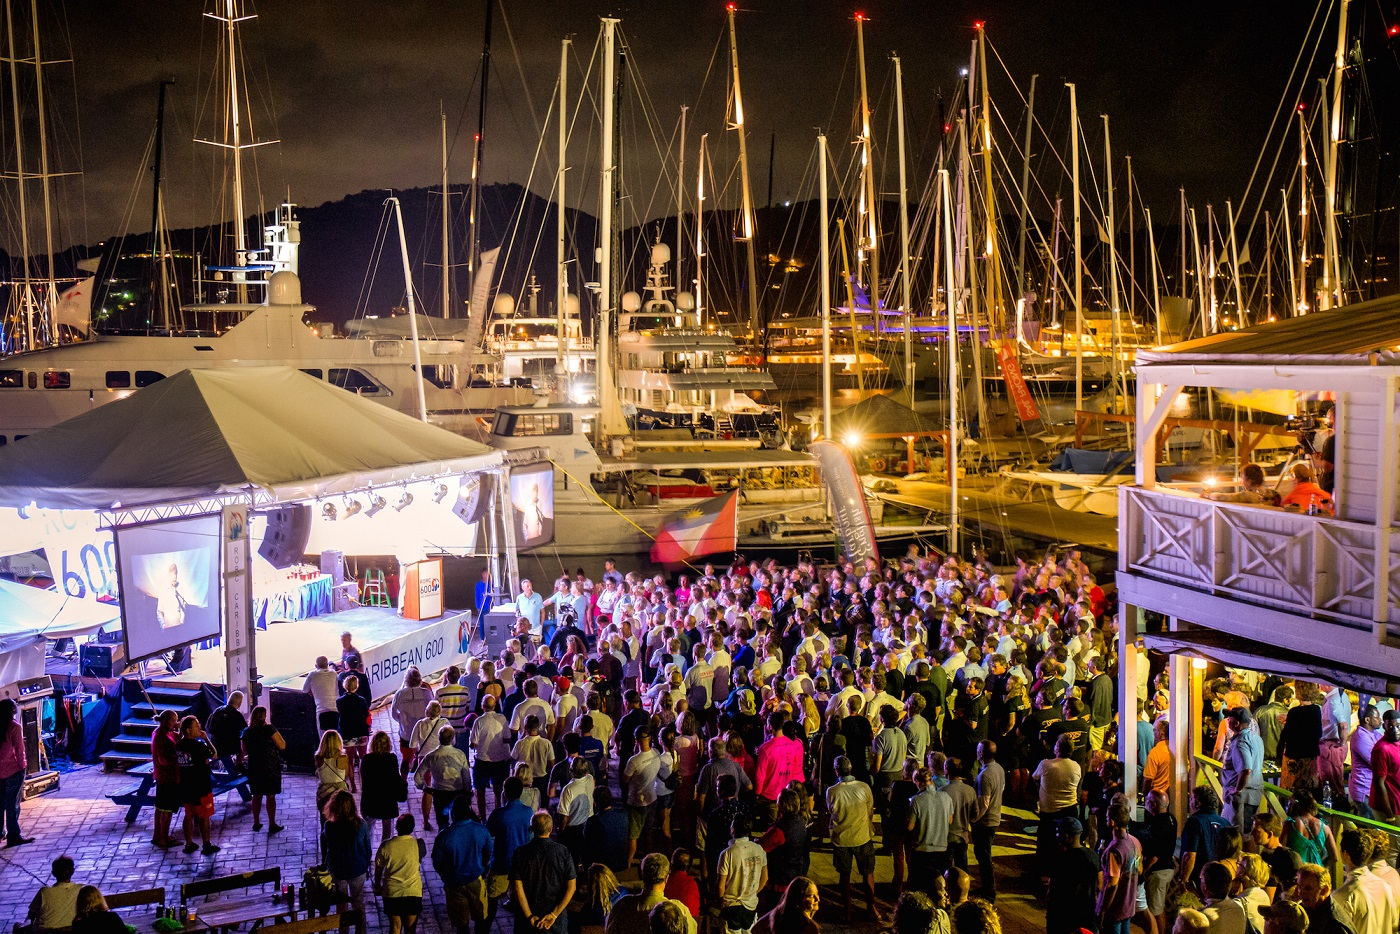 Crews gather for the RORC Caribbean 600 prizegiving at Antigua Yacht Club © RORC/Arthur Daniel